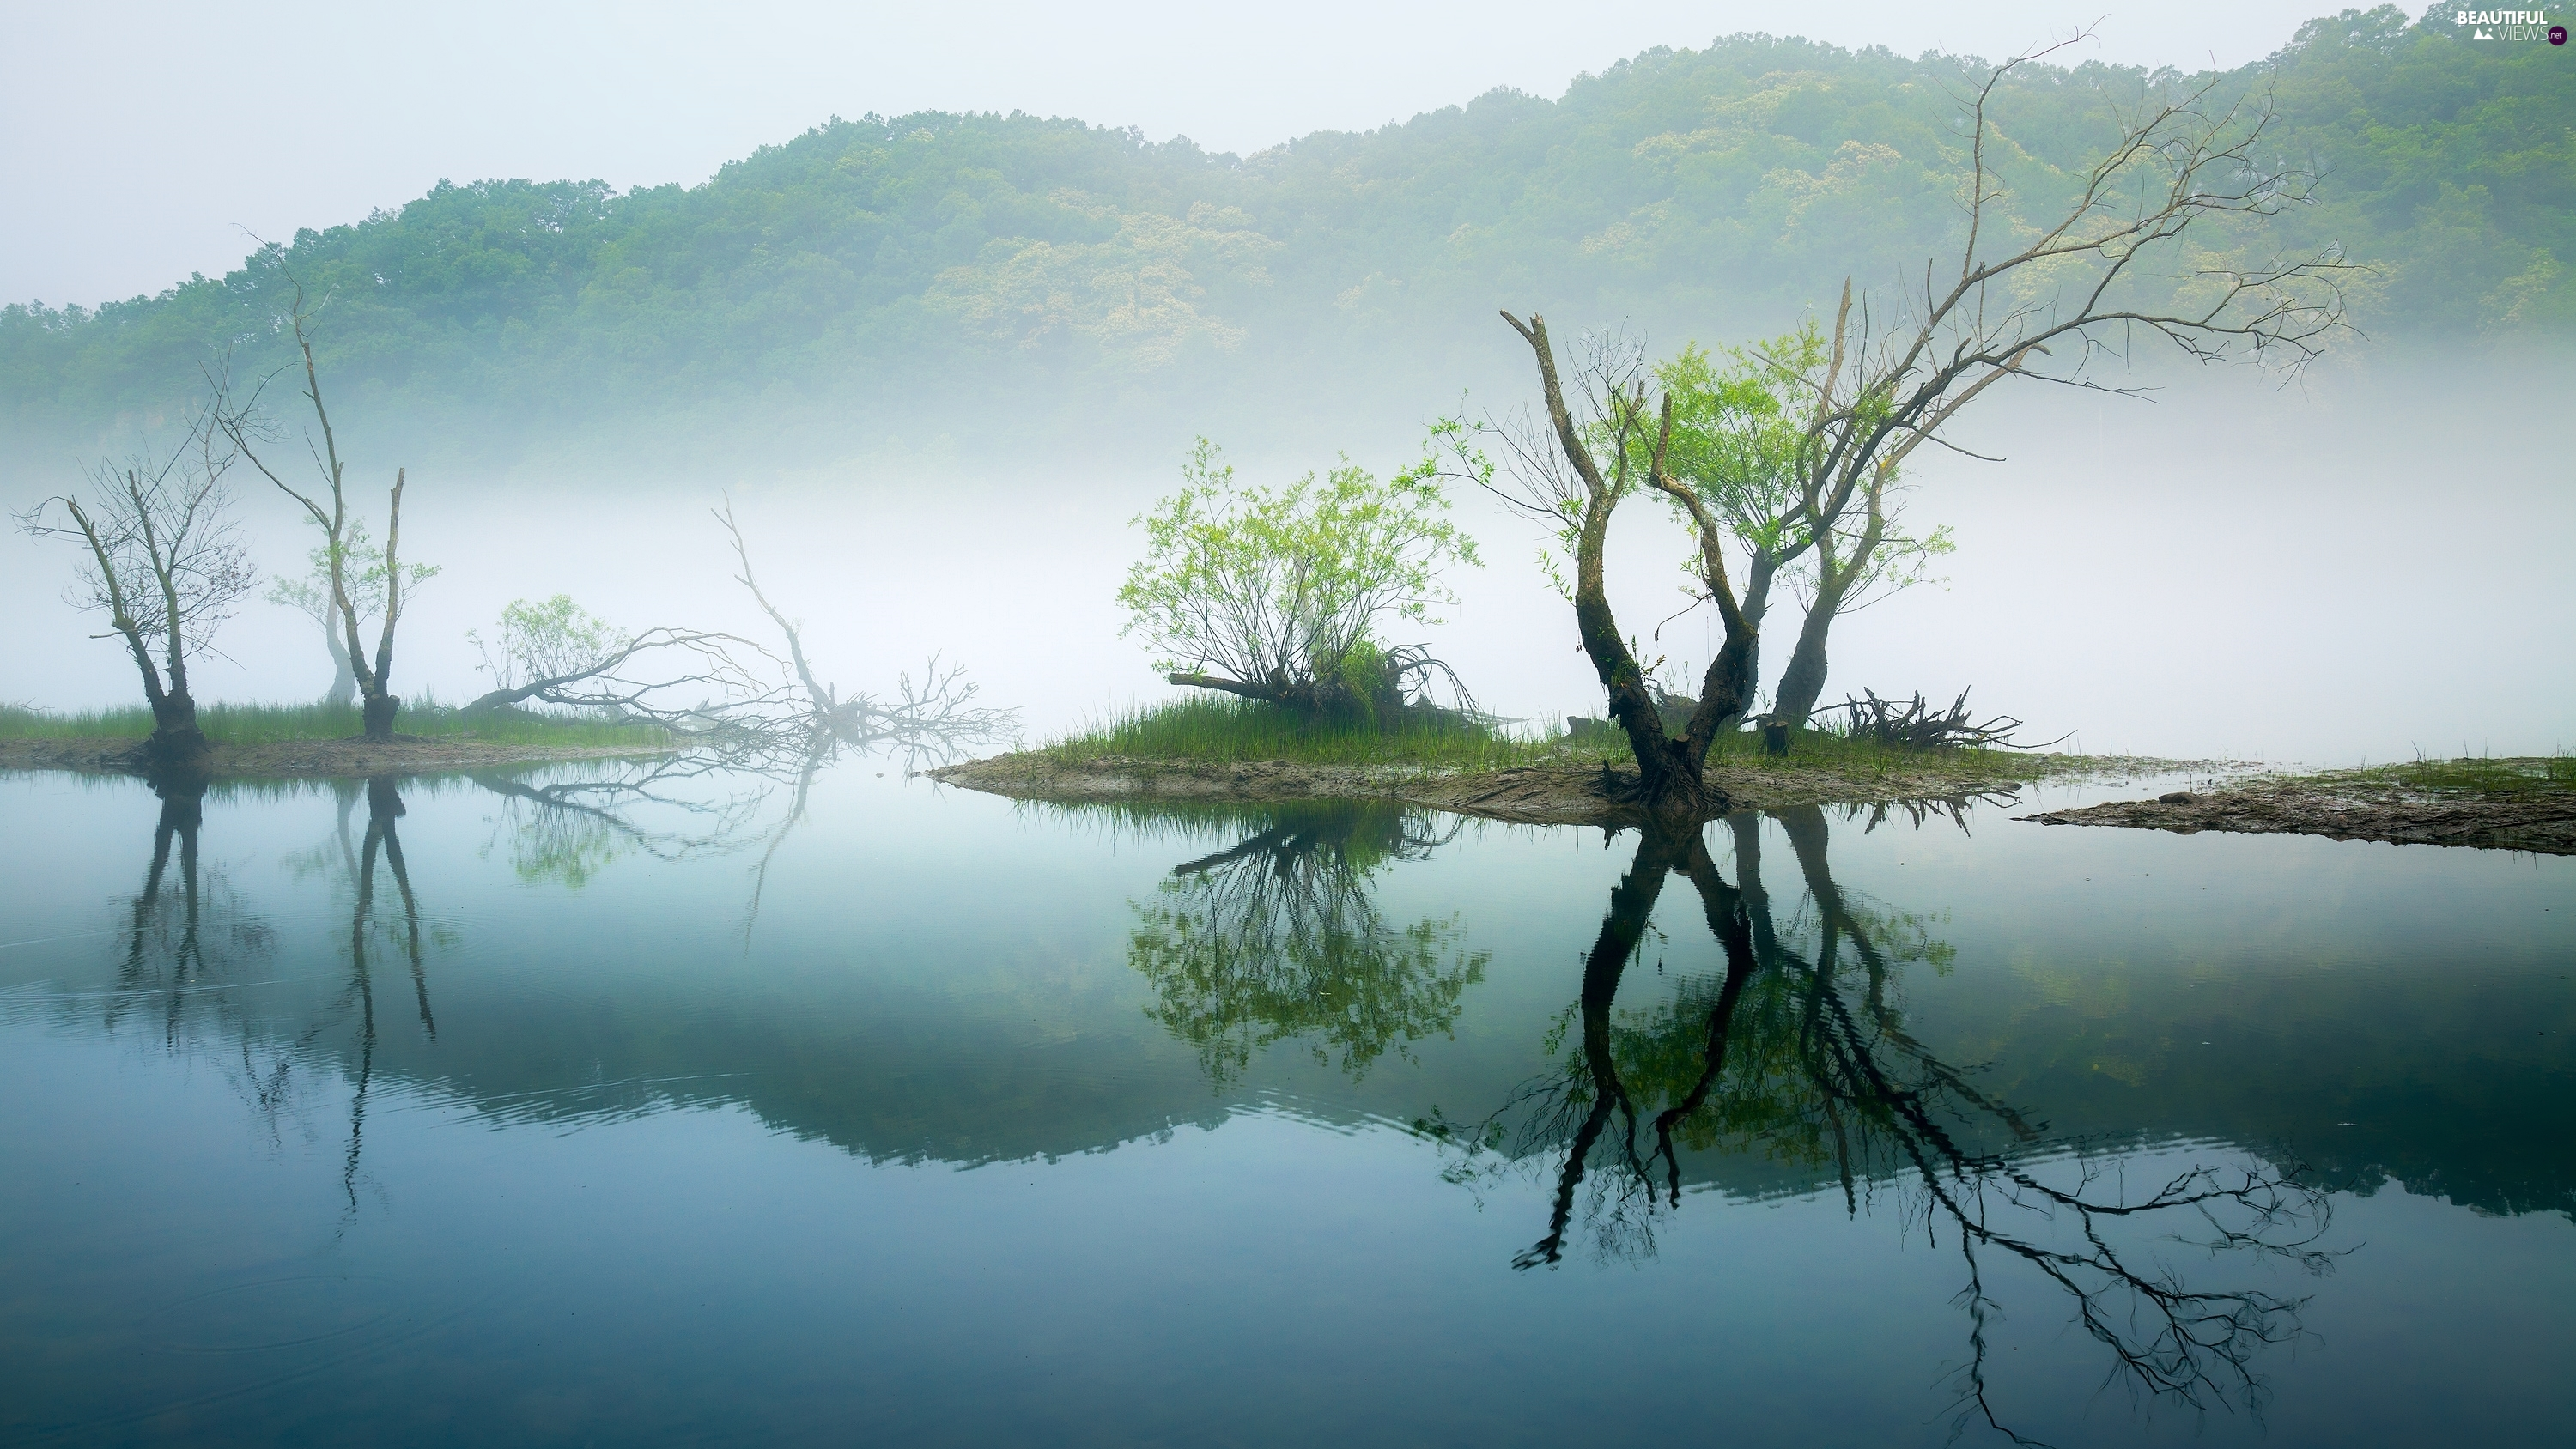 lake, viewes, Fog, trees